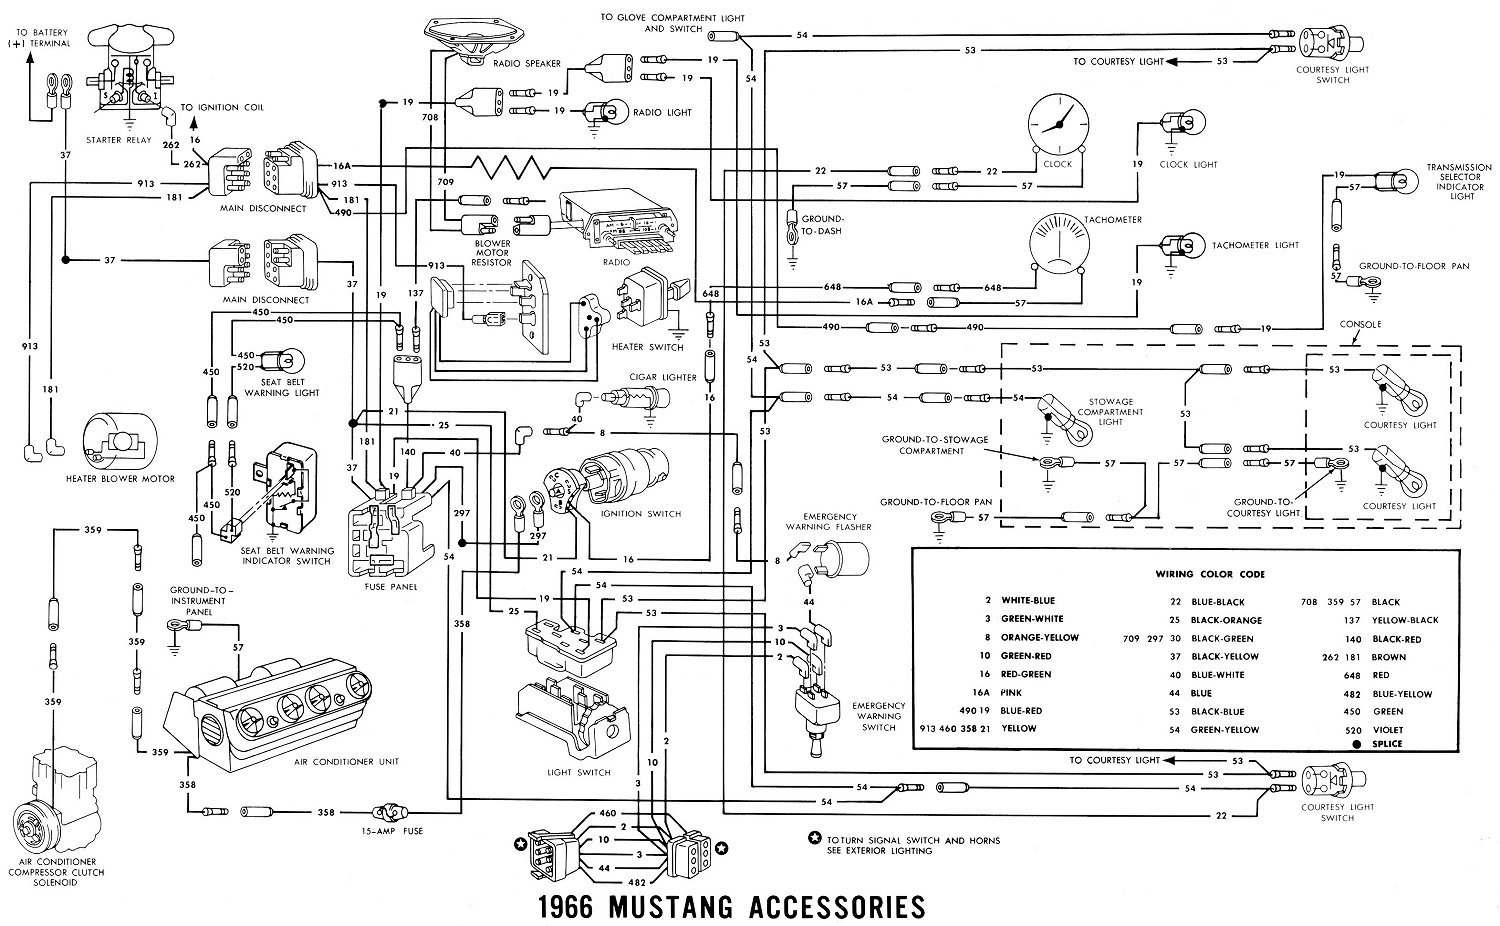 112253d1286219572 1966 mustang curtesy light problem 1966 ford mustang accessories wiring diagram wiring diagram for a 3910 ford tractor the wiring diagram ford think wiring diagram at eliteediting.co